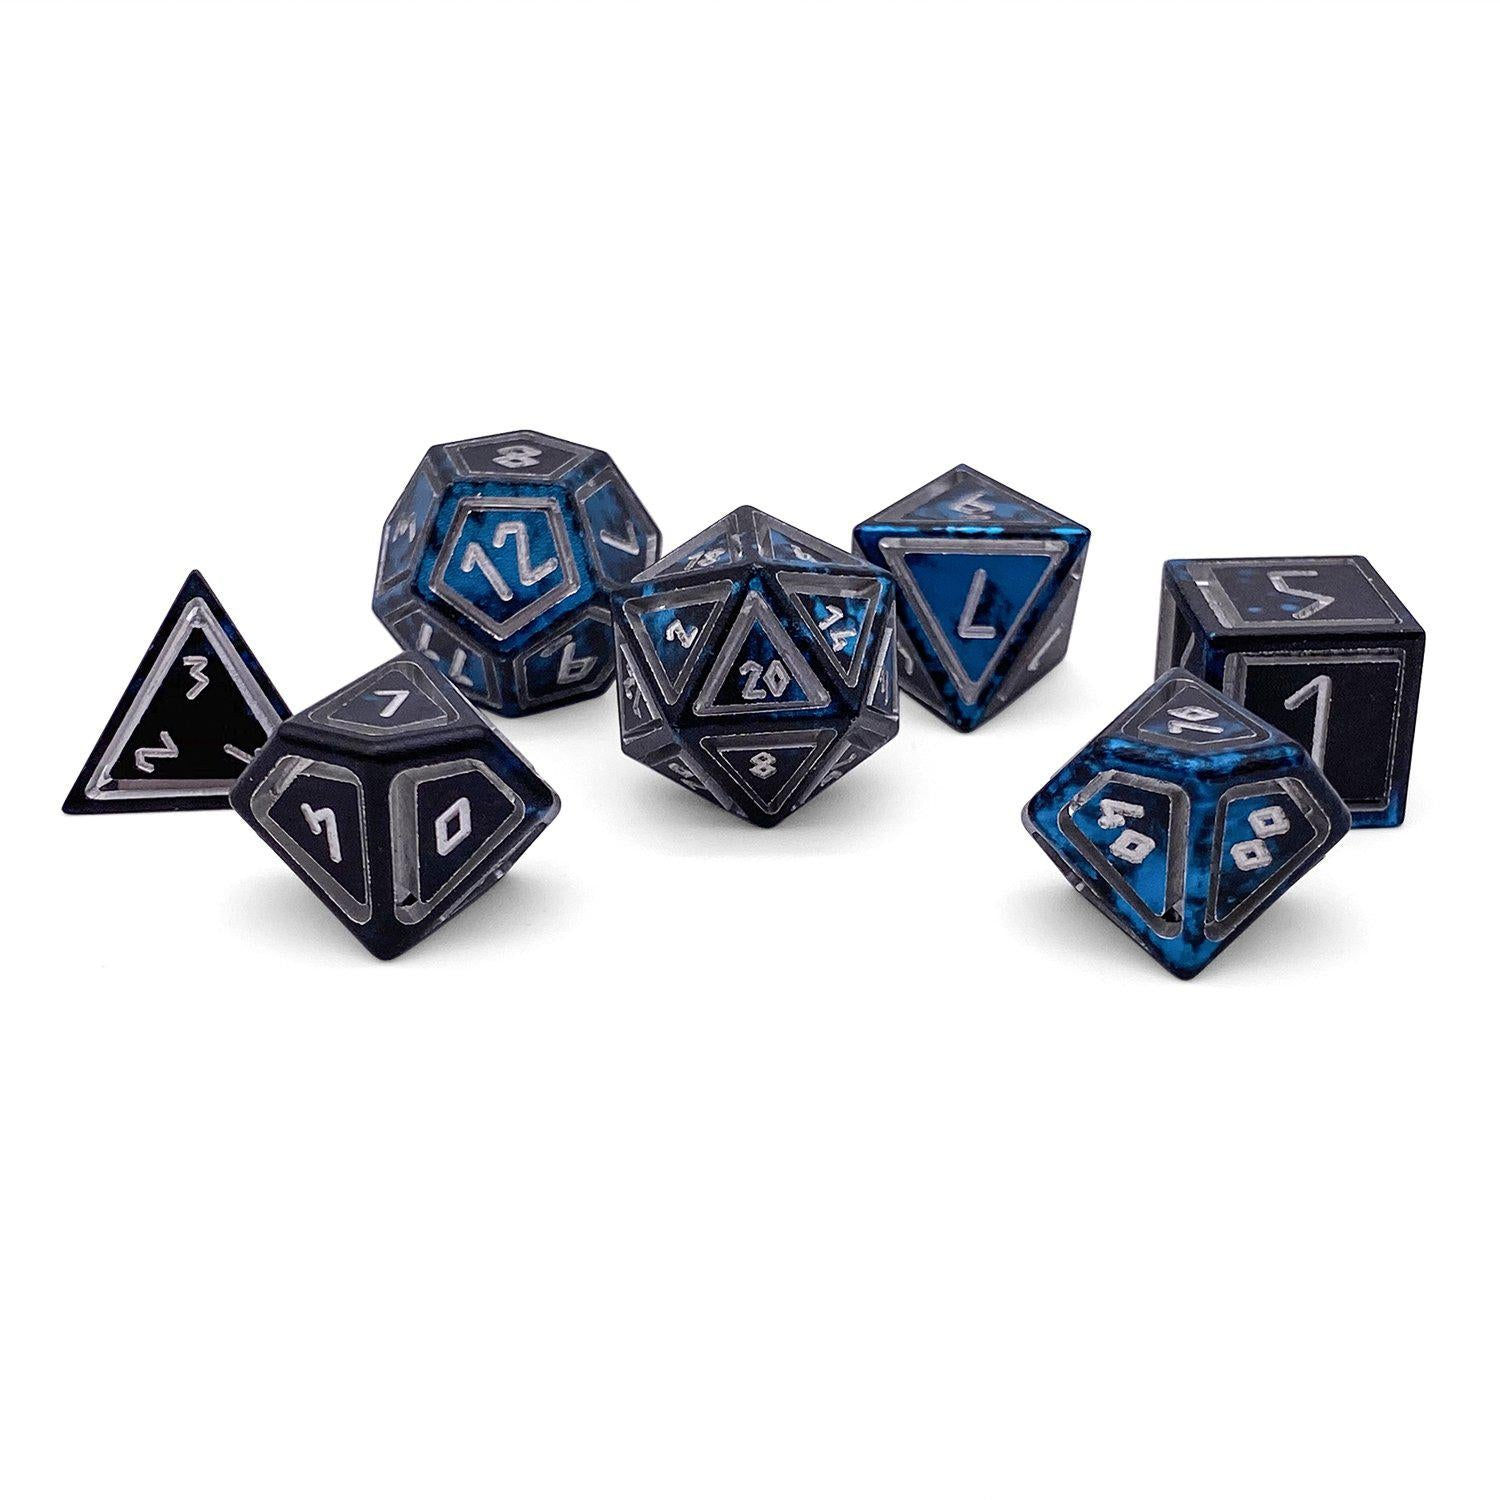 Nimbus Wondrous Precision CNC Aluminum Dice Set - Willow O' Wisp